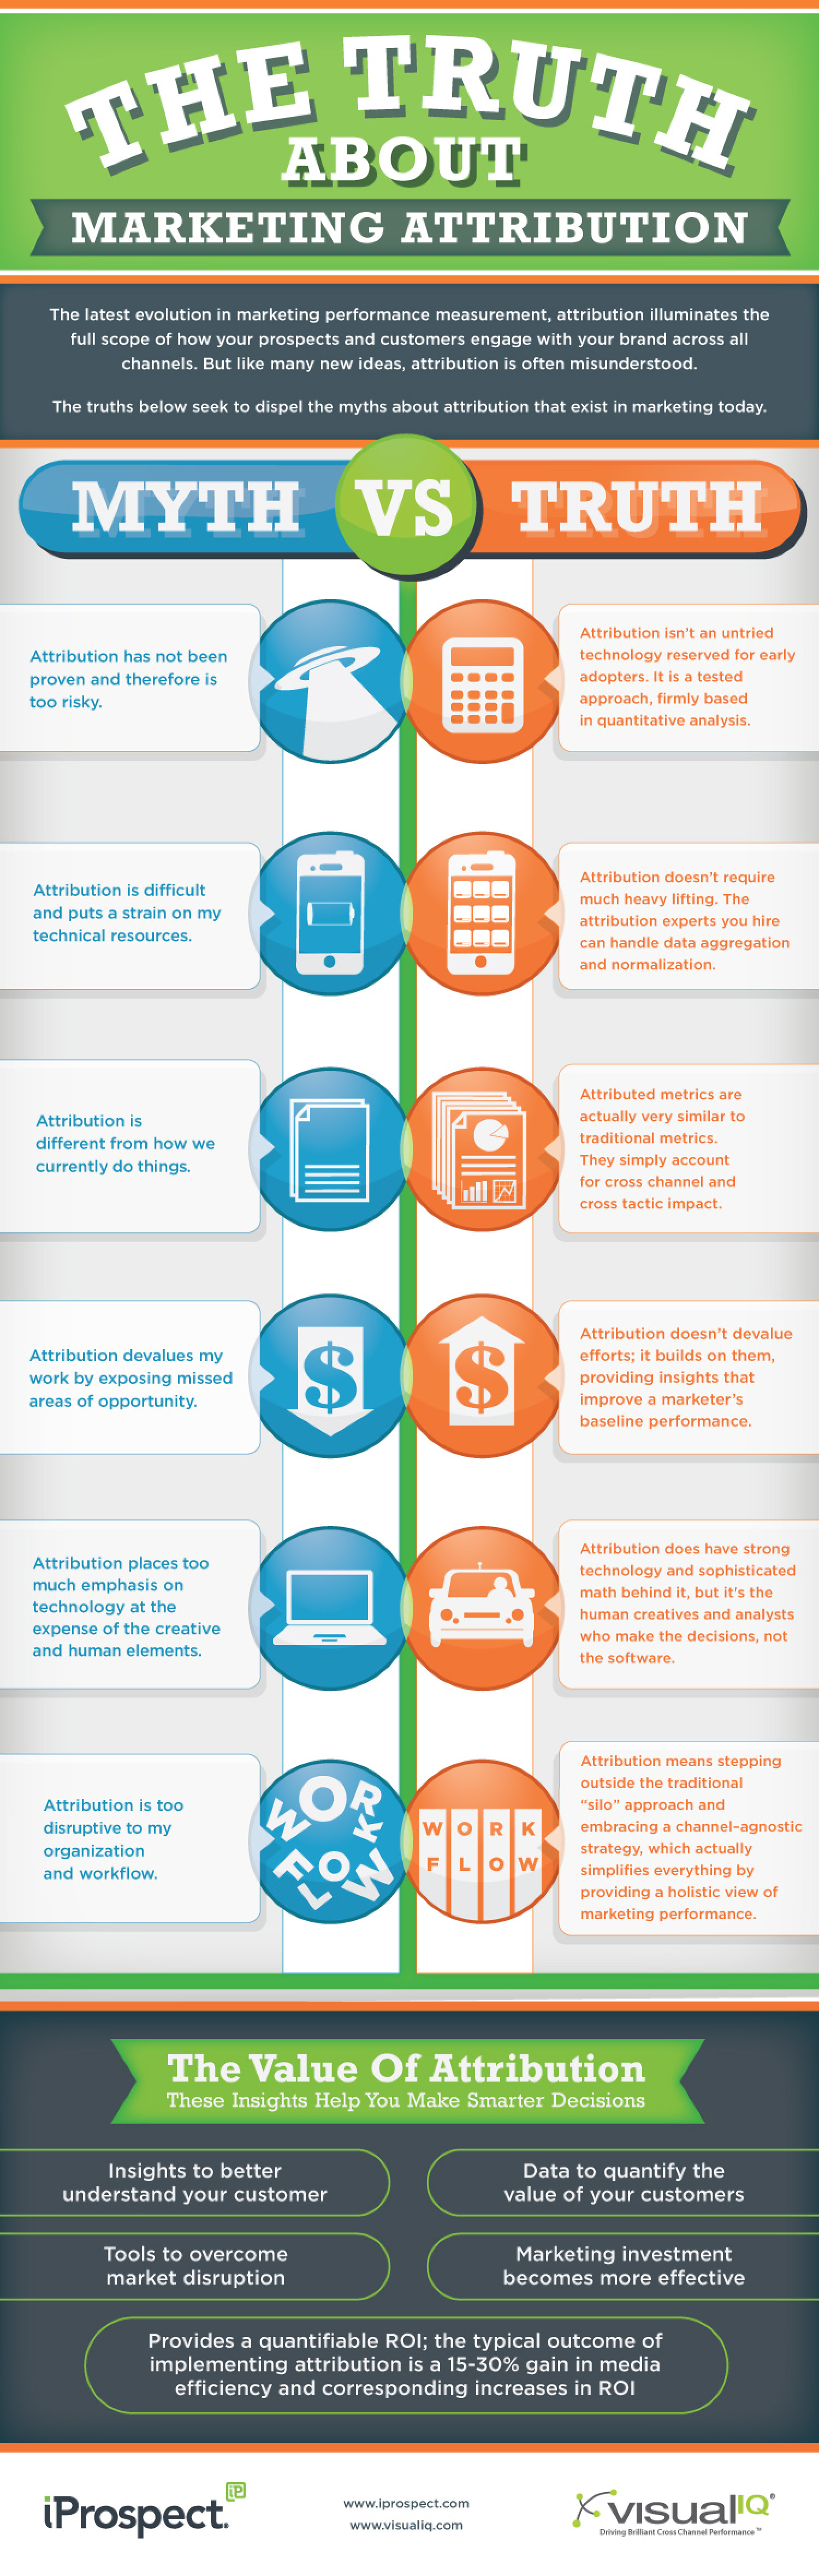 The Truth About Marketing Attribution Infographic